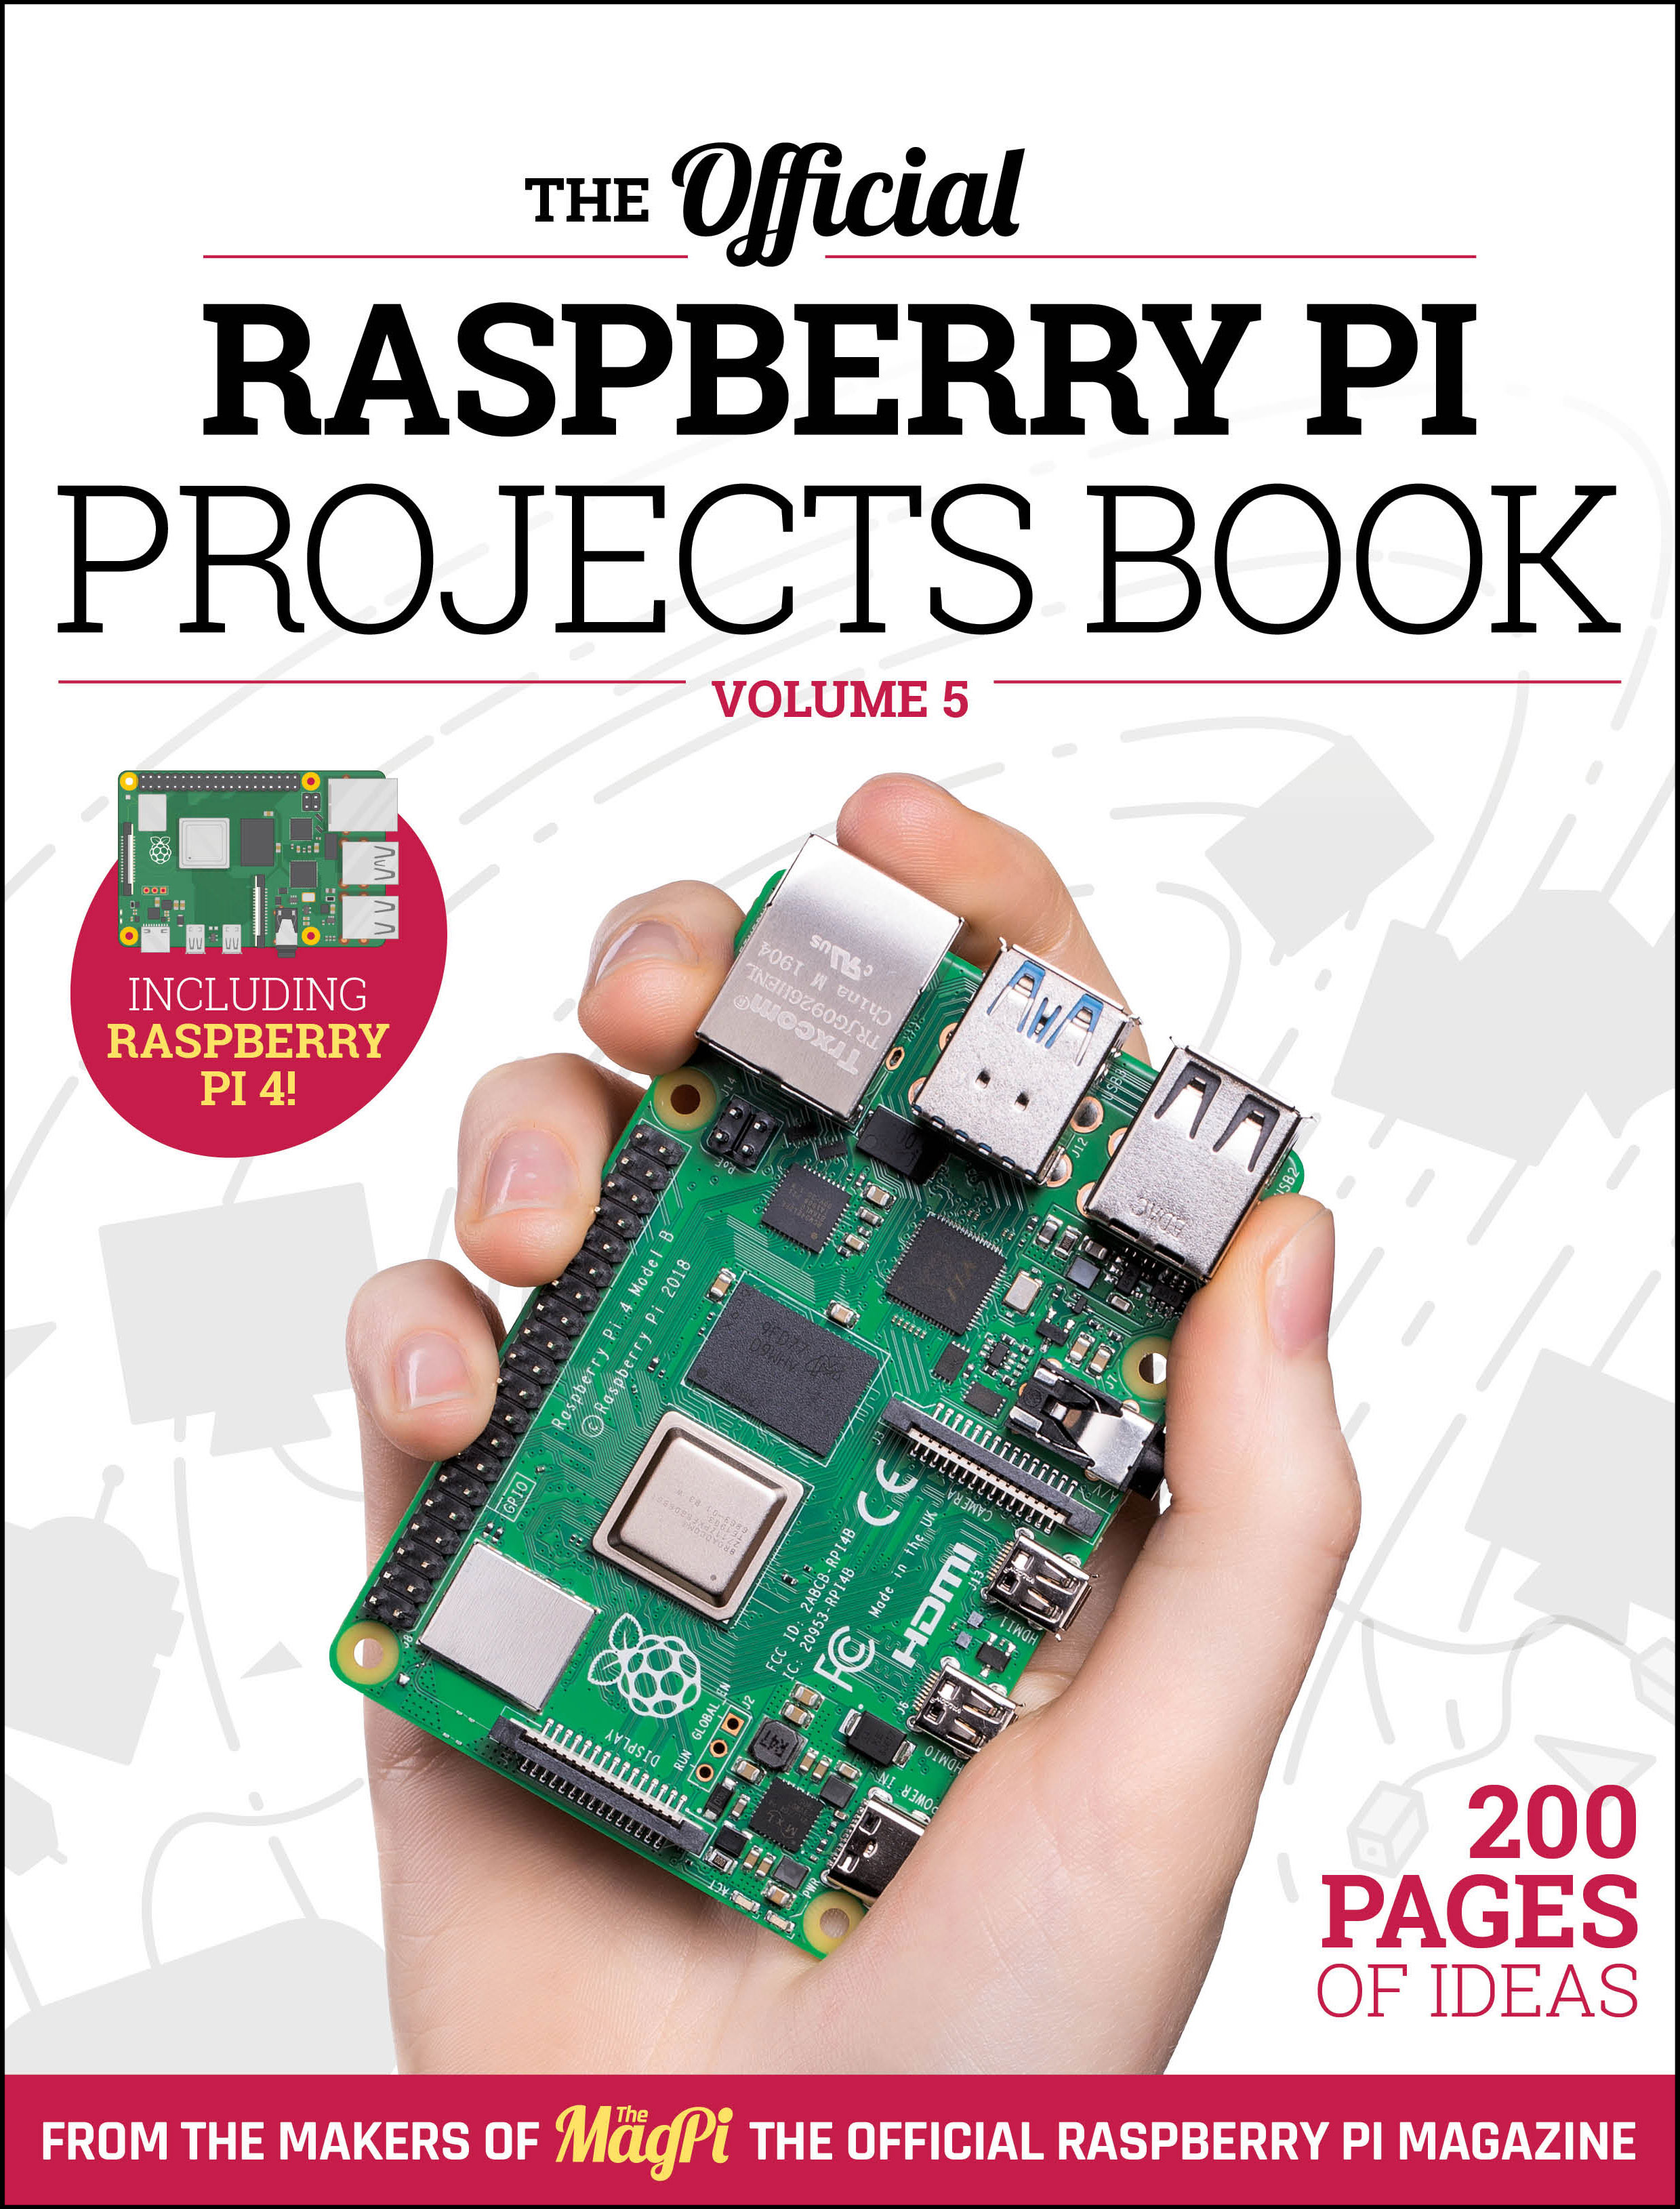 Projects Book 5 — The MagPi magazine